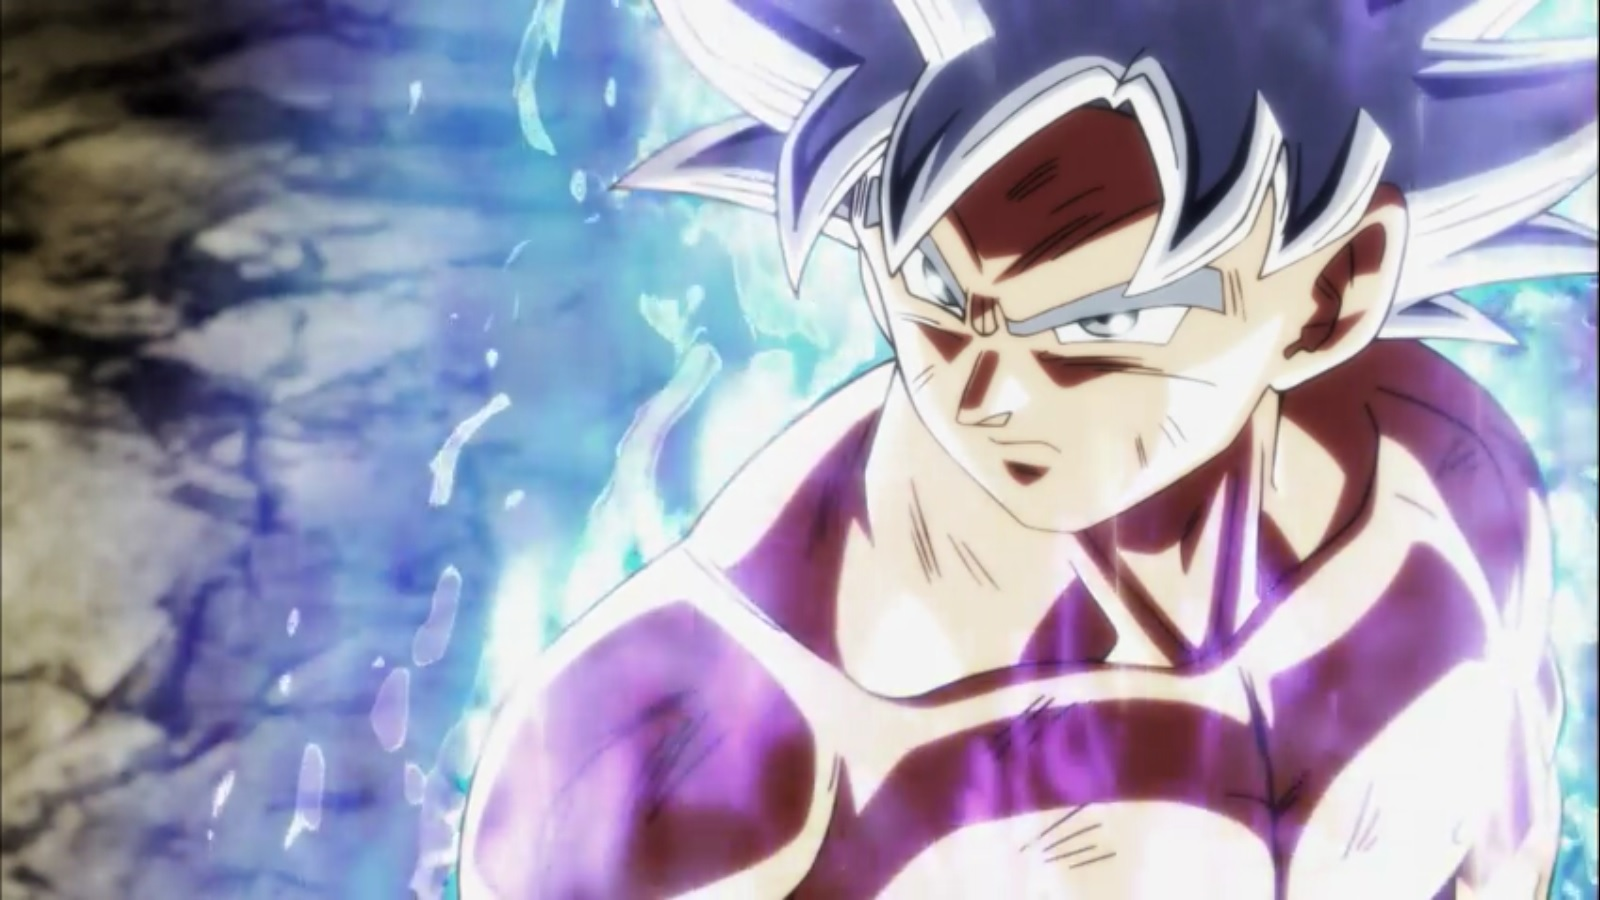 Ultra Instinct Dragon Ball Super Gif 1600x900 Wallpaper Teahub Io